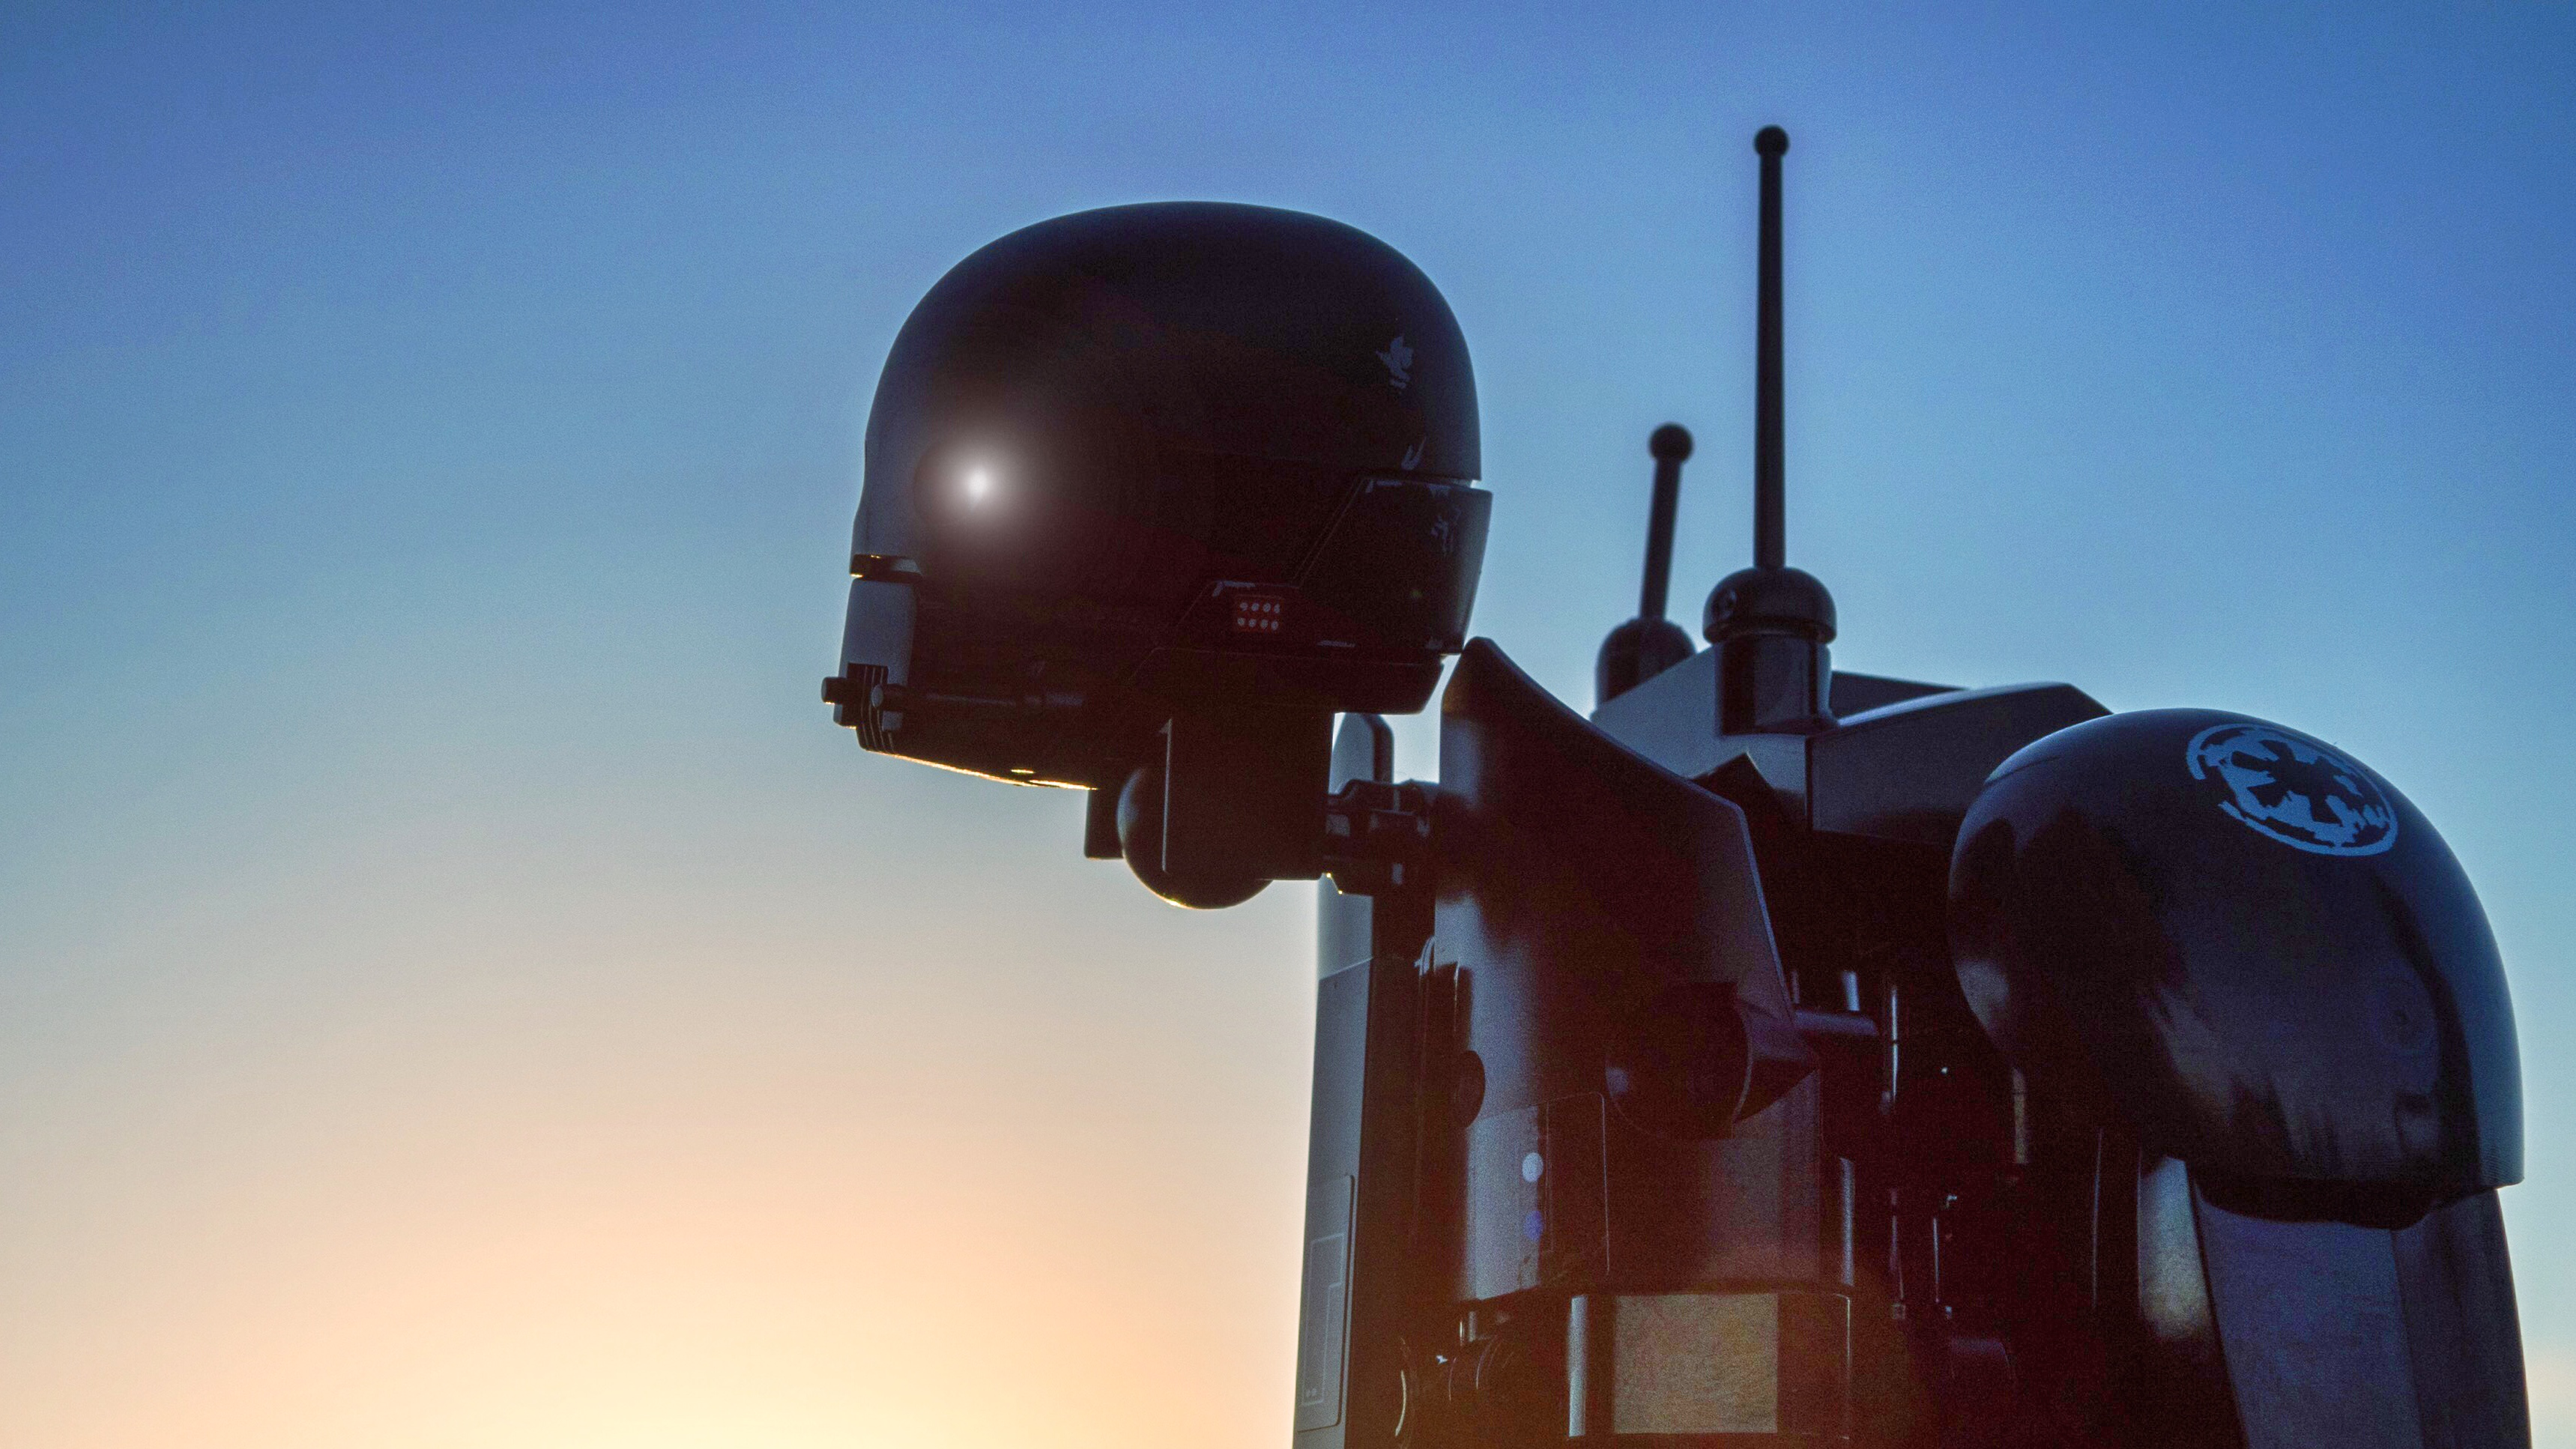 LEGO K-2SO at sunset